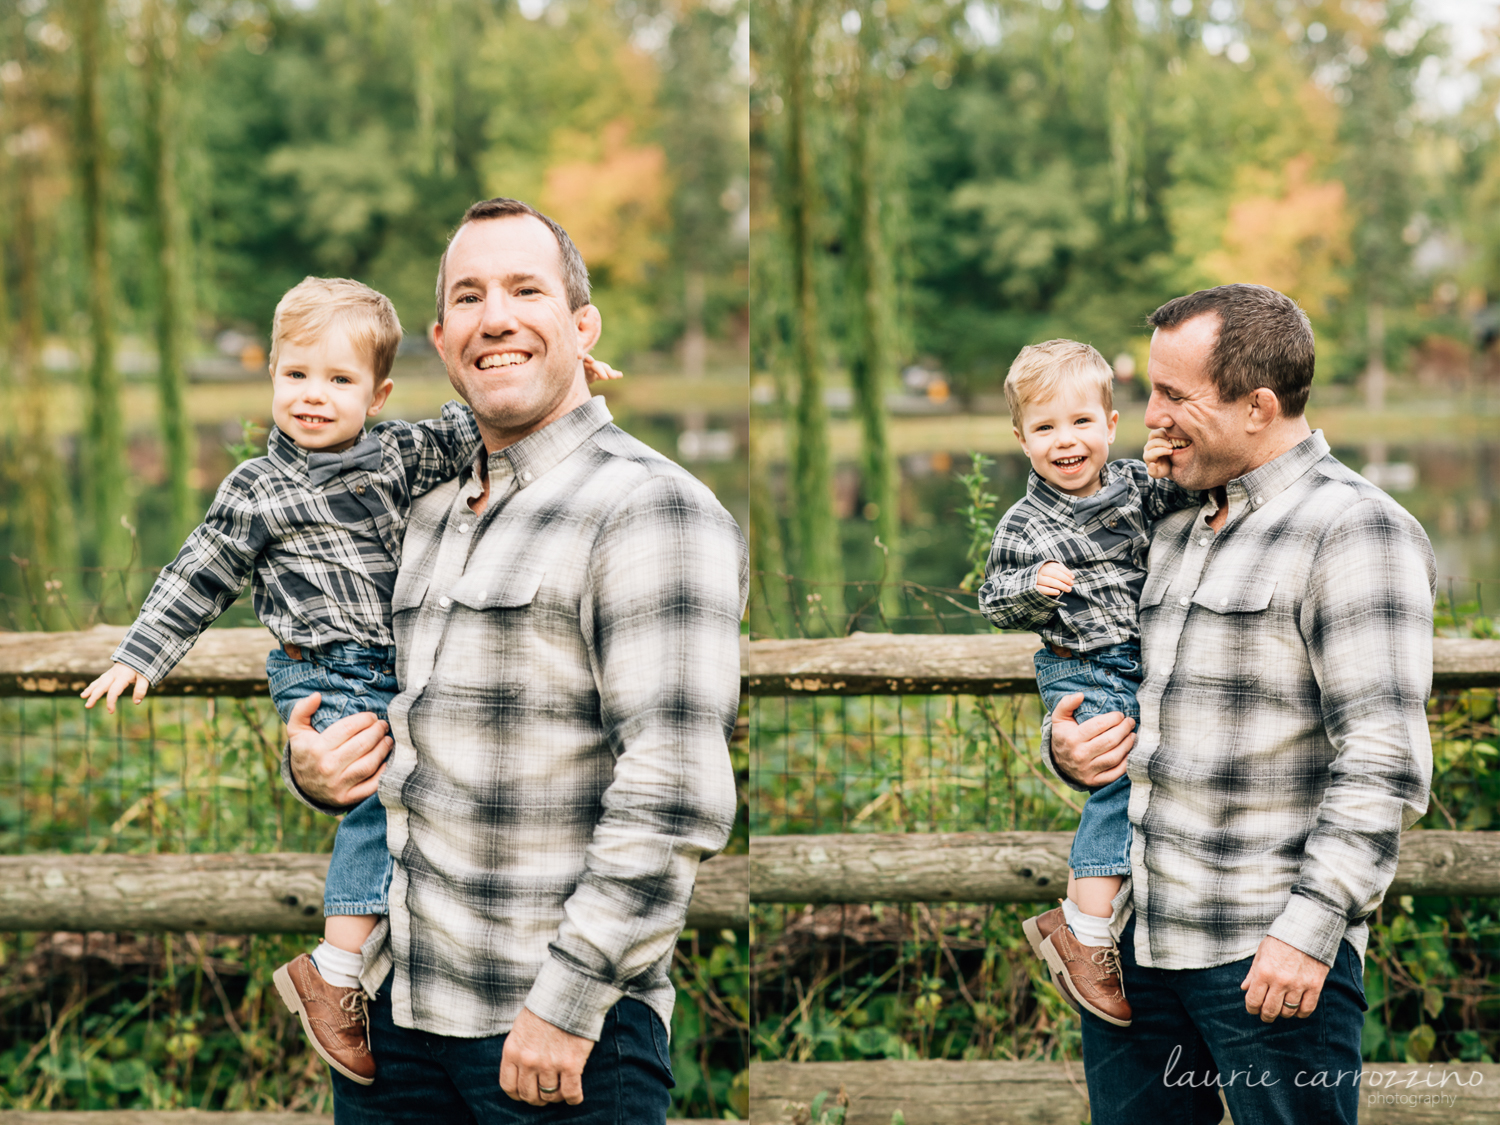 haverfordfamilysession11-2.jpg